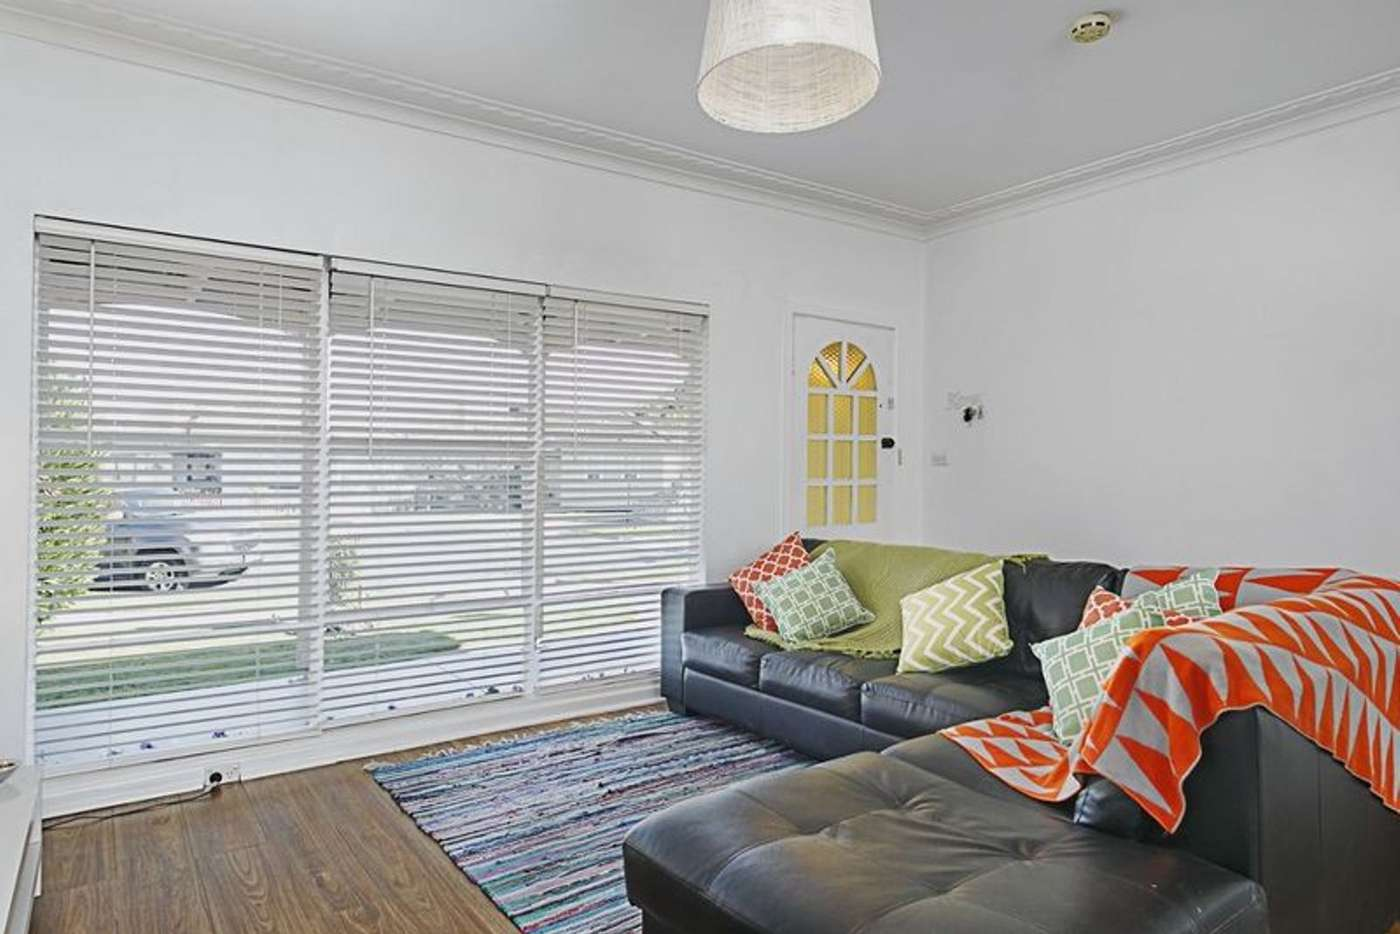 Seventh view of Homely house listing, 23 Morshead Court, White Hills VIC 3550